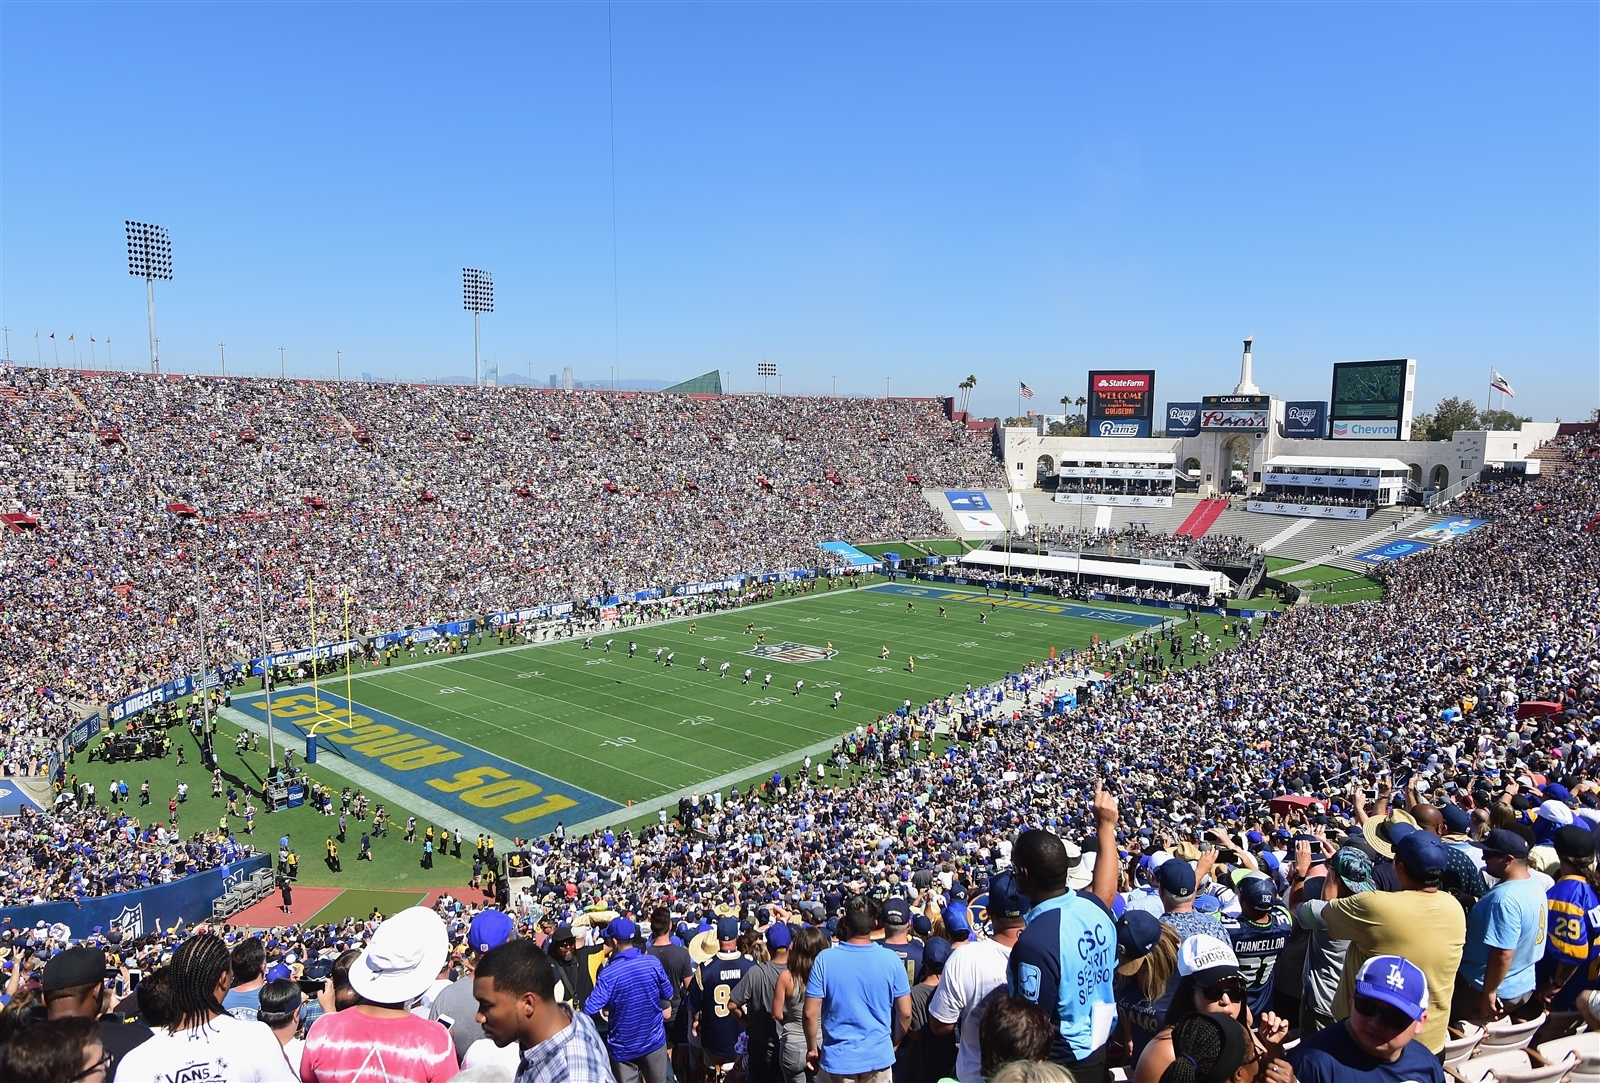 The newly relocated Rams are playing in the Los Angeles Coliseum.